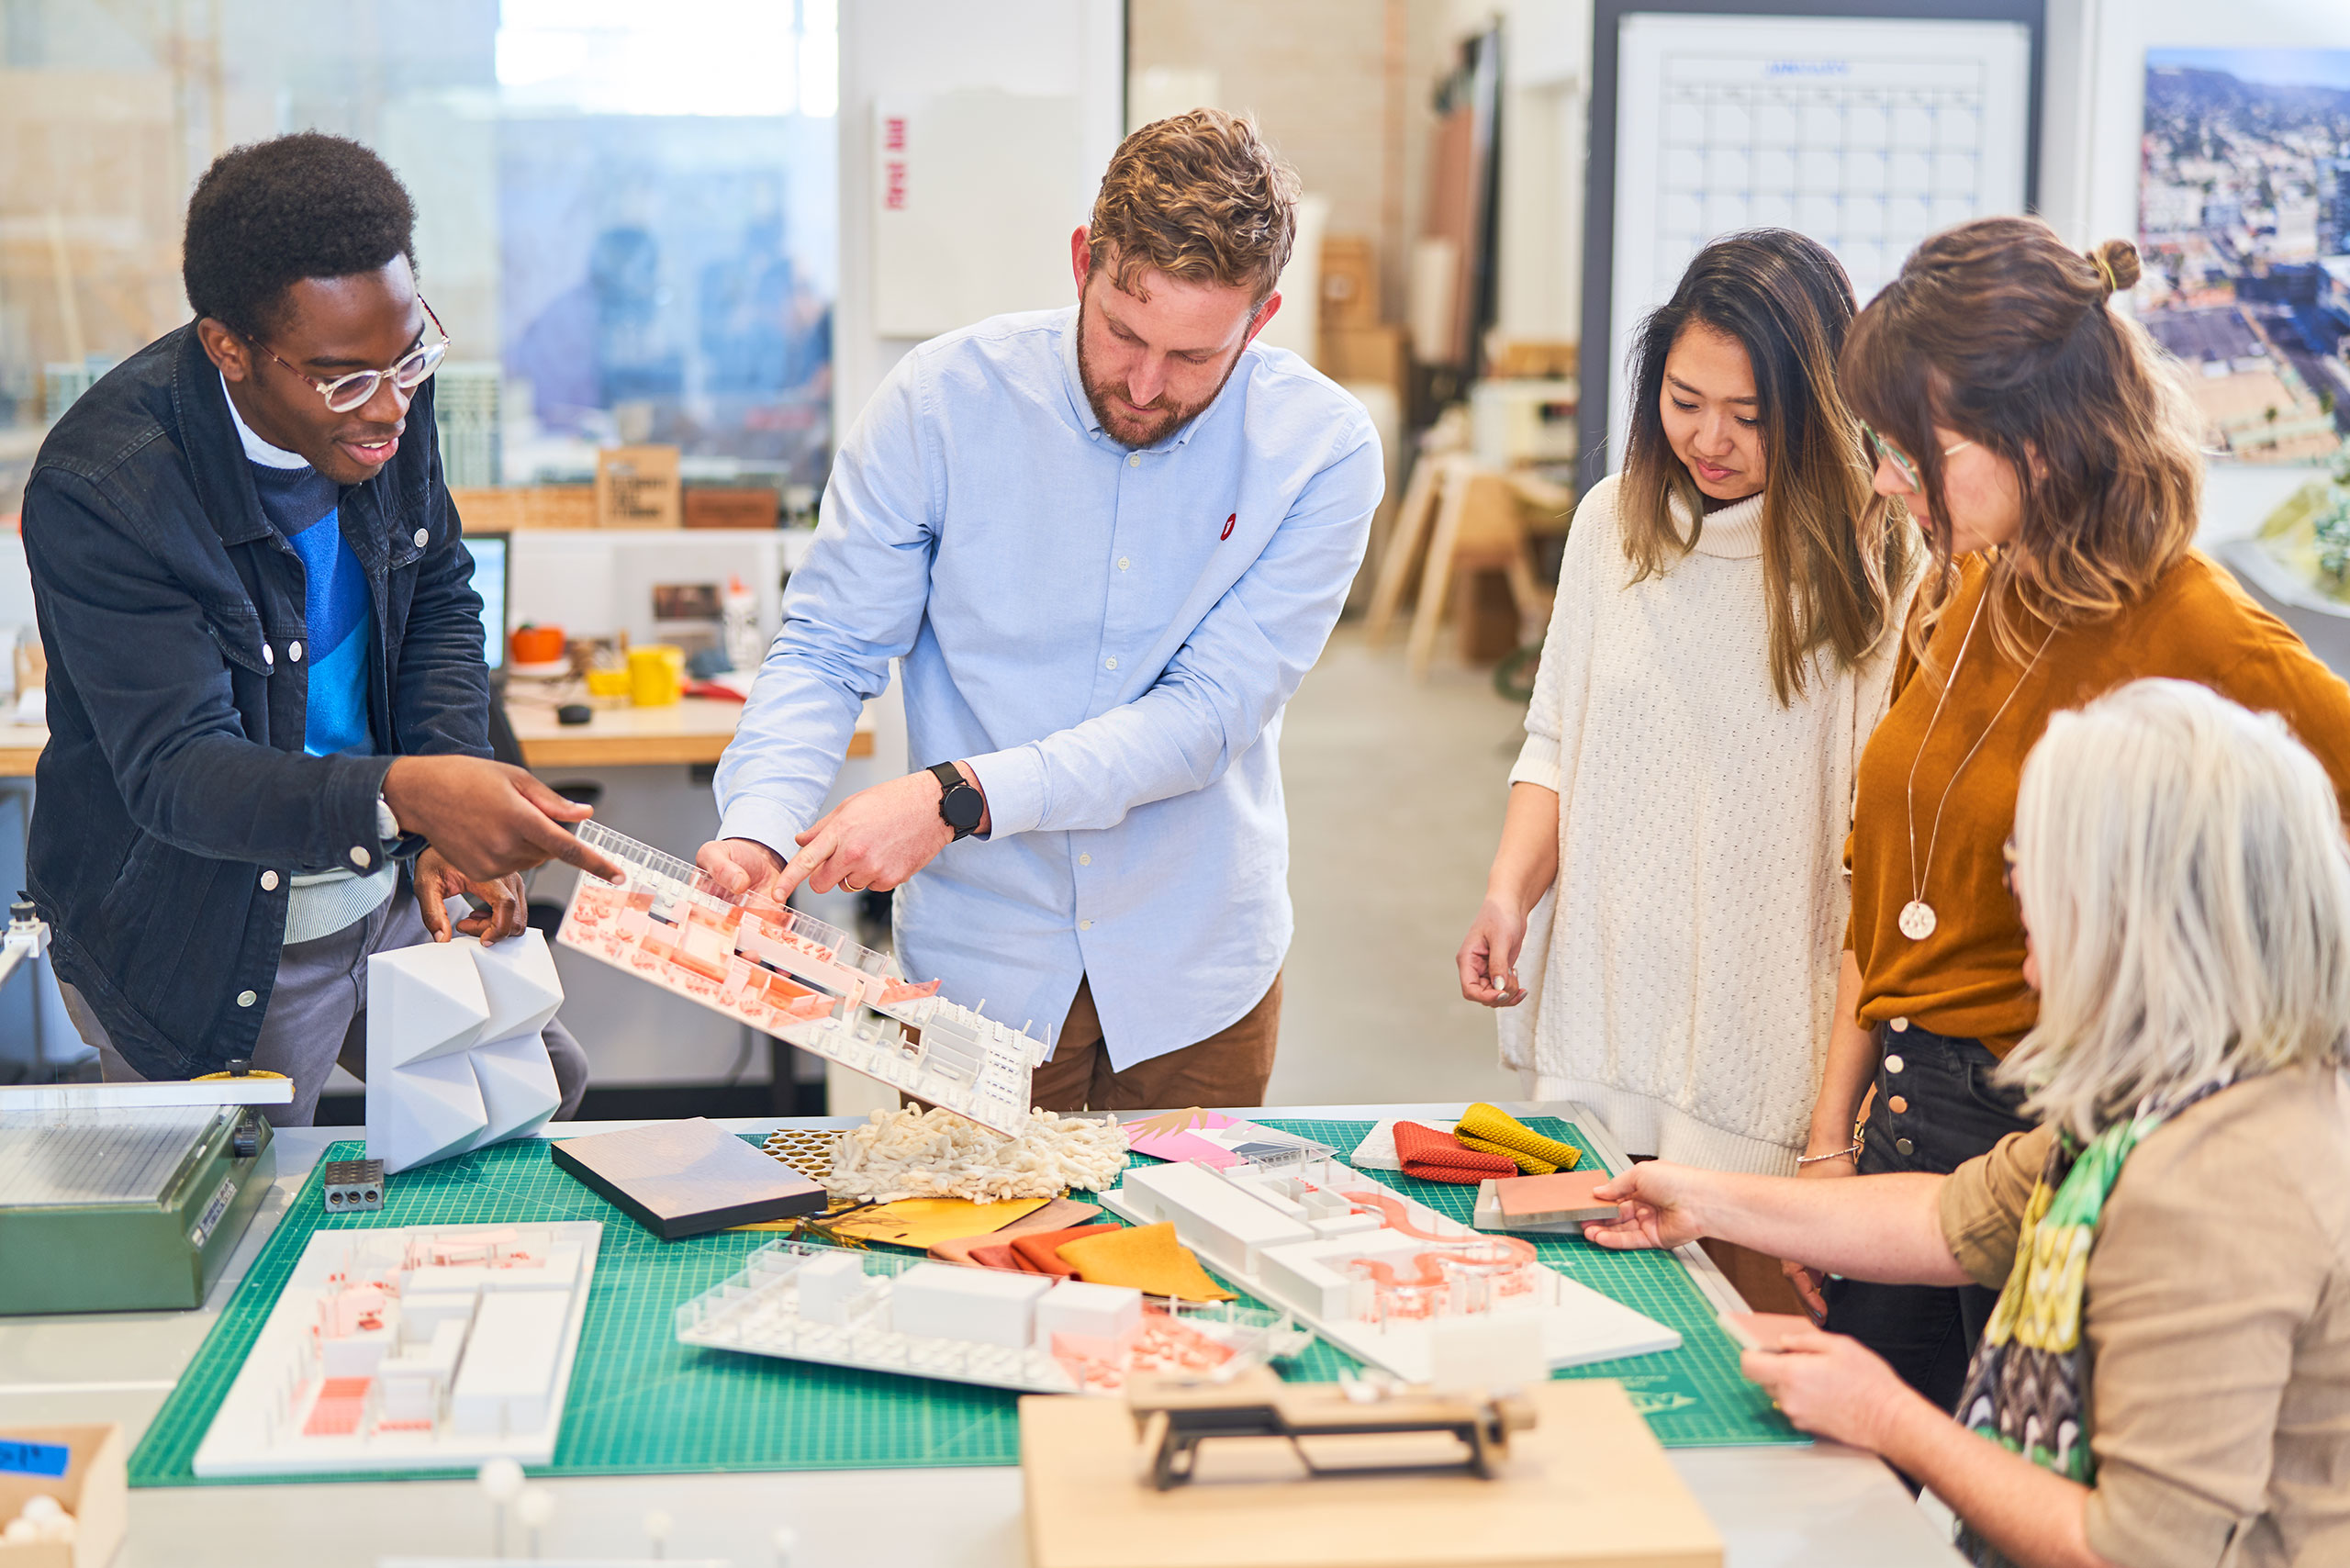 People working around a table with building models and materials